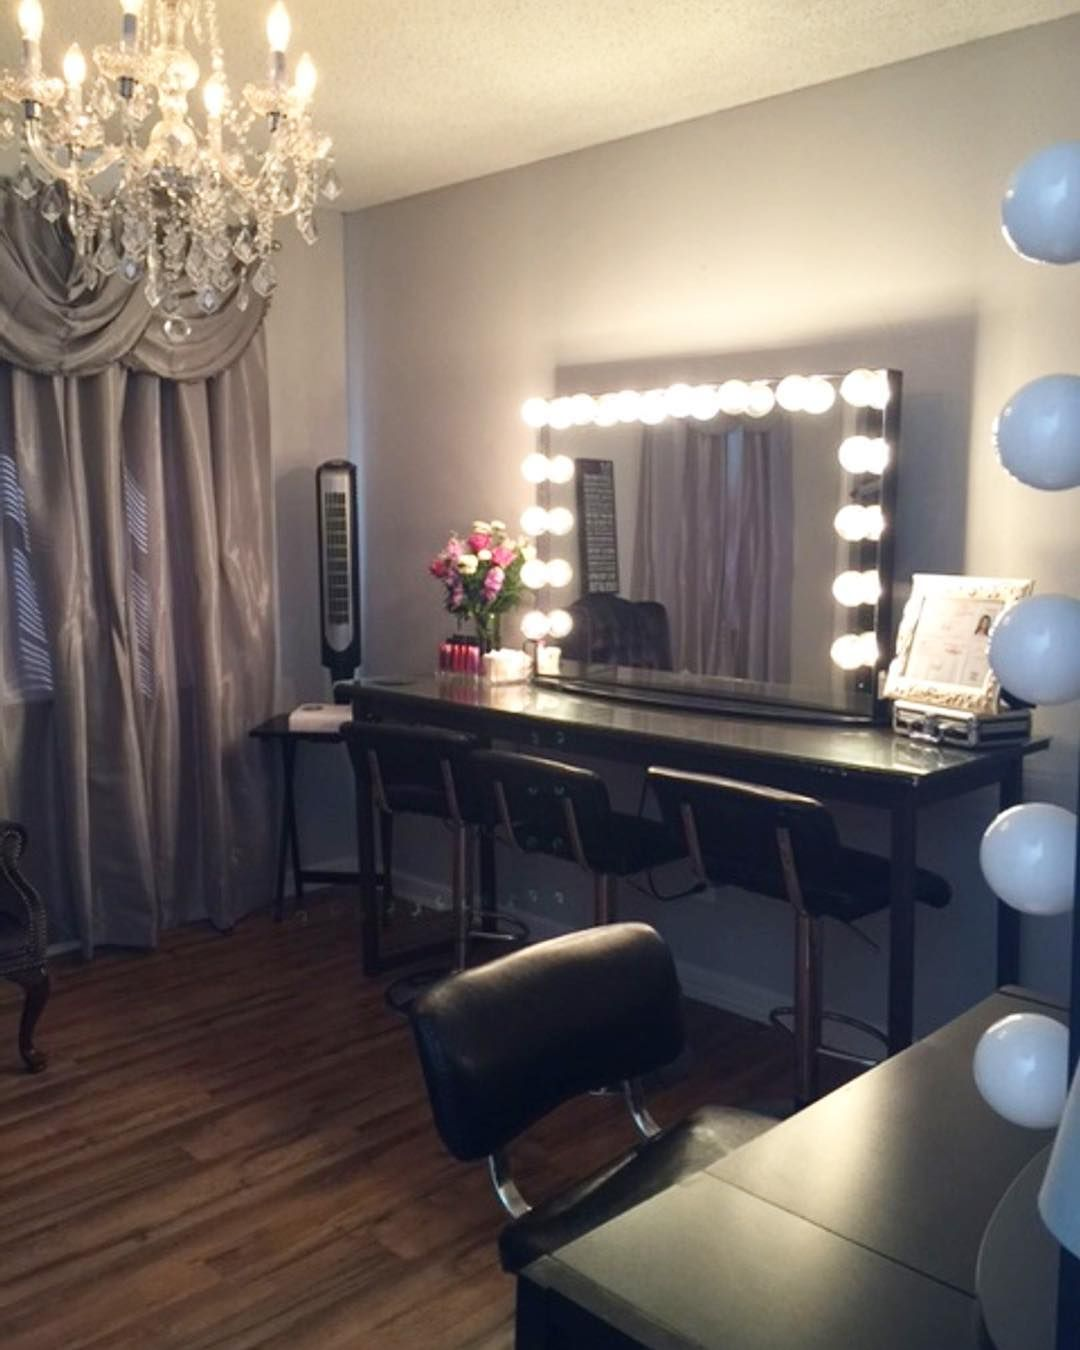 8a8b46ab1277 Pin by Jaidyn Brianne Perkins on Vanity Salon  Girly cave in 2018 ...